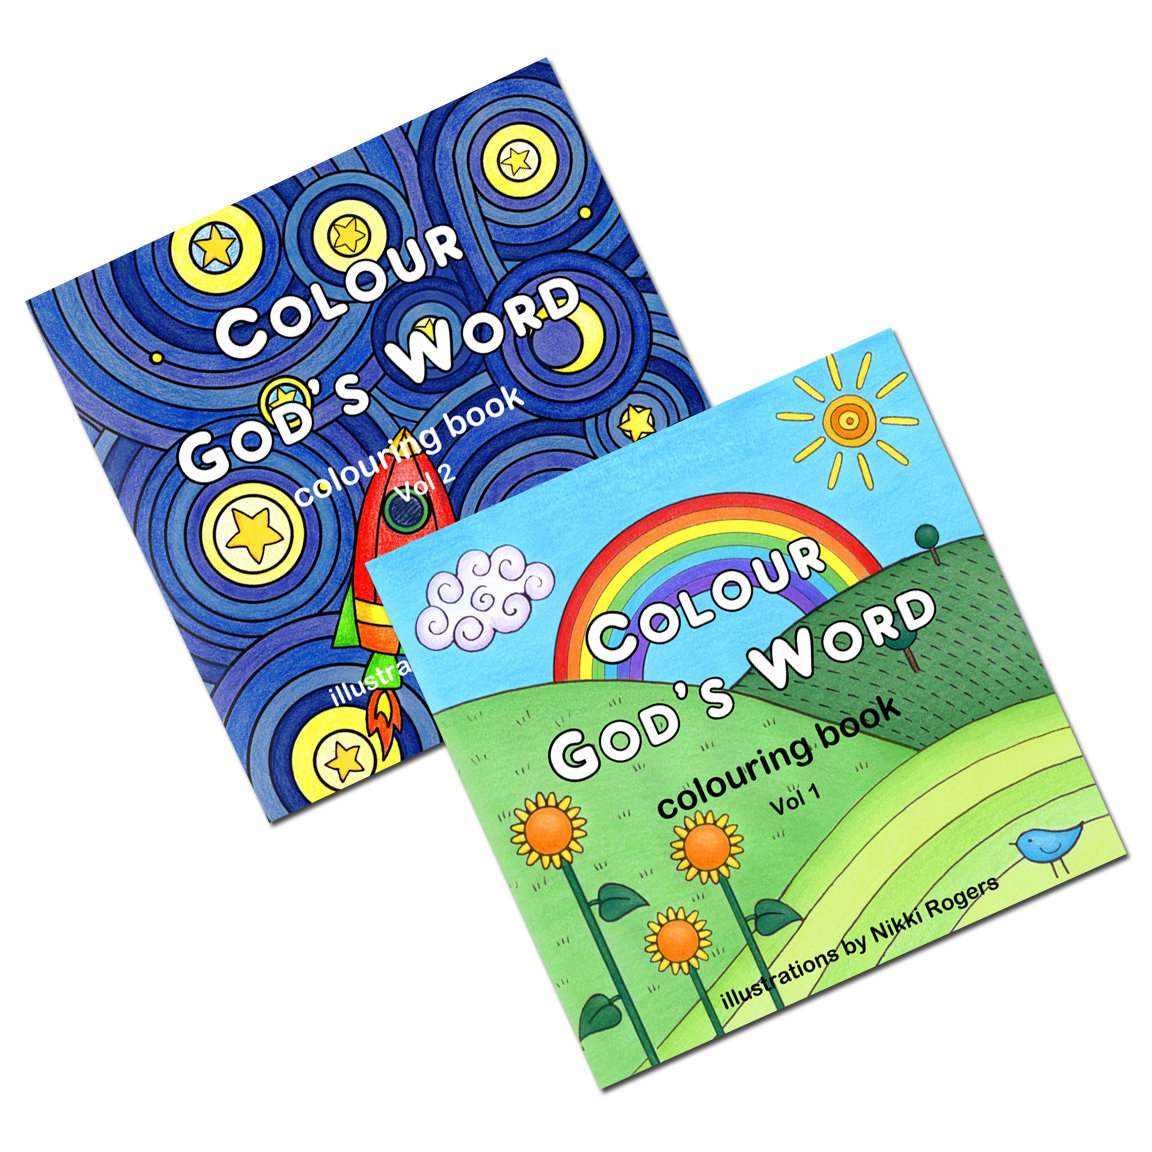 Growing with God book pack